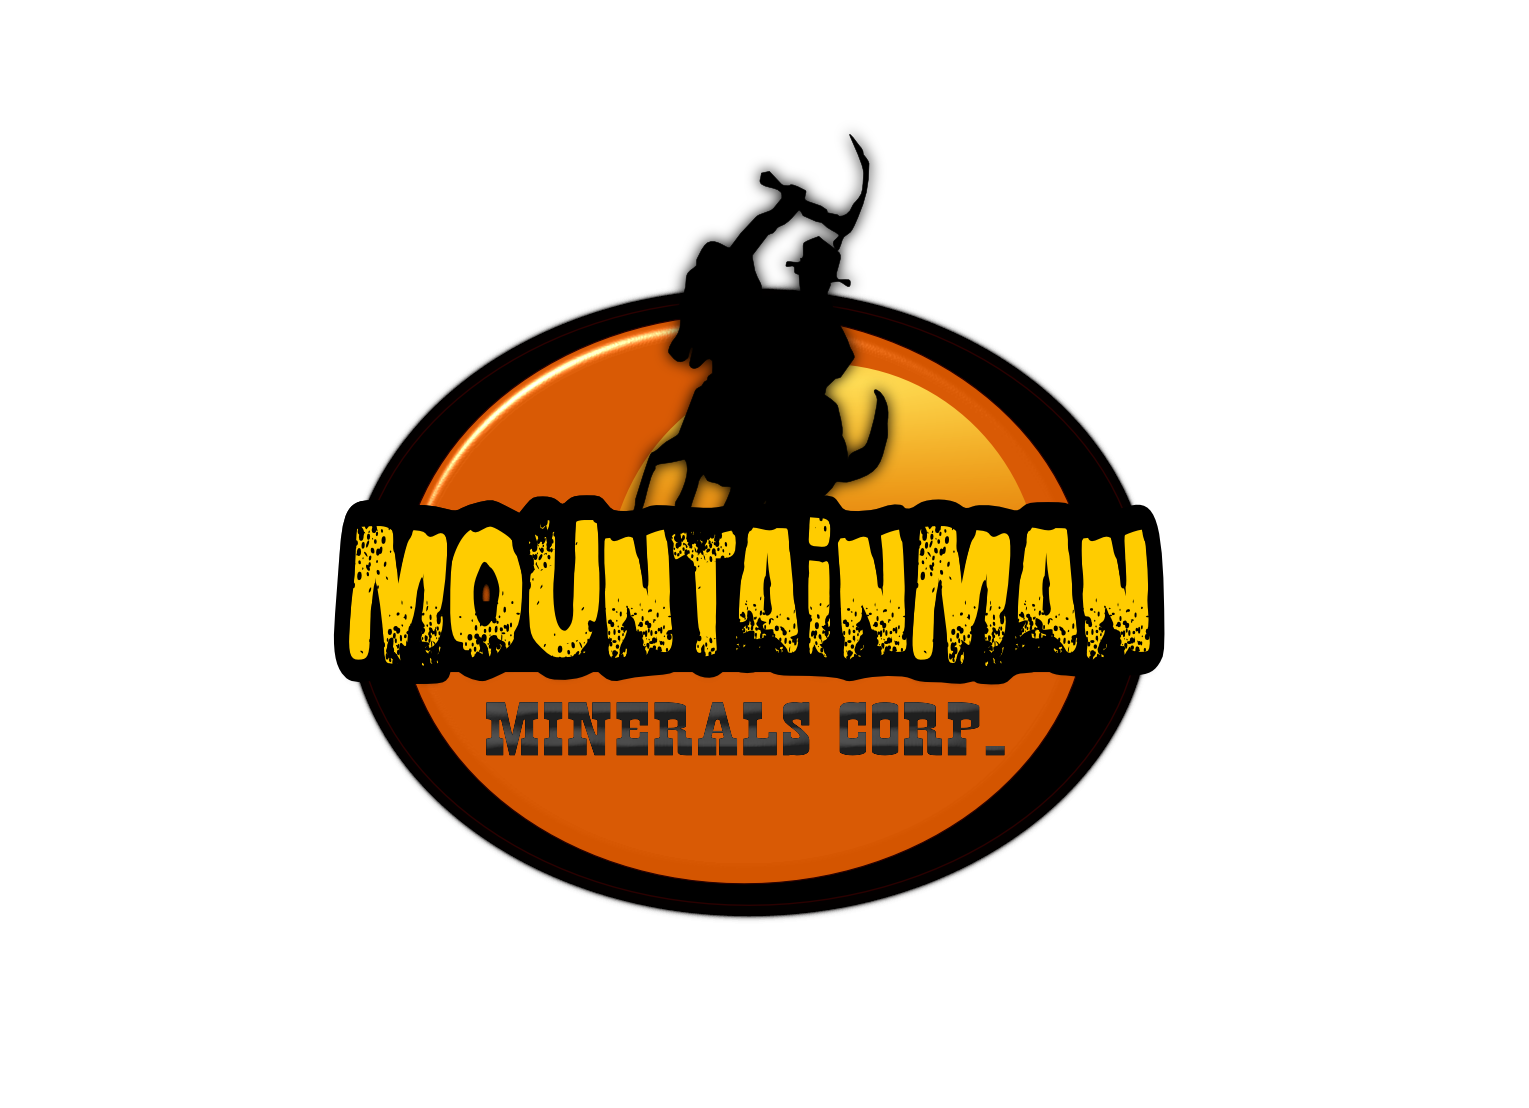 Logo Design by Joseph calunsag Cagaanan - Entry No. 17 in the Logo Design Contest Mountian Man Minerals Corp. Logo Design.